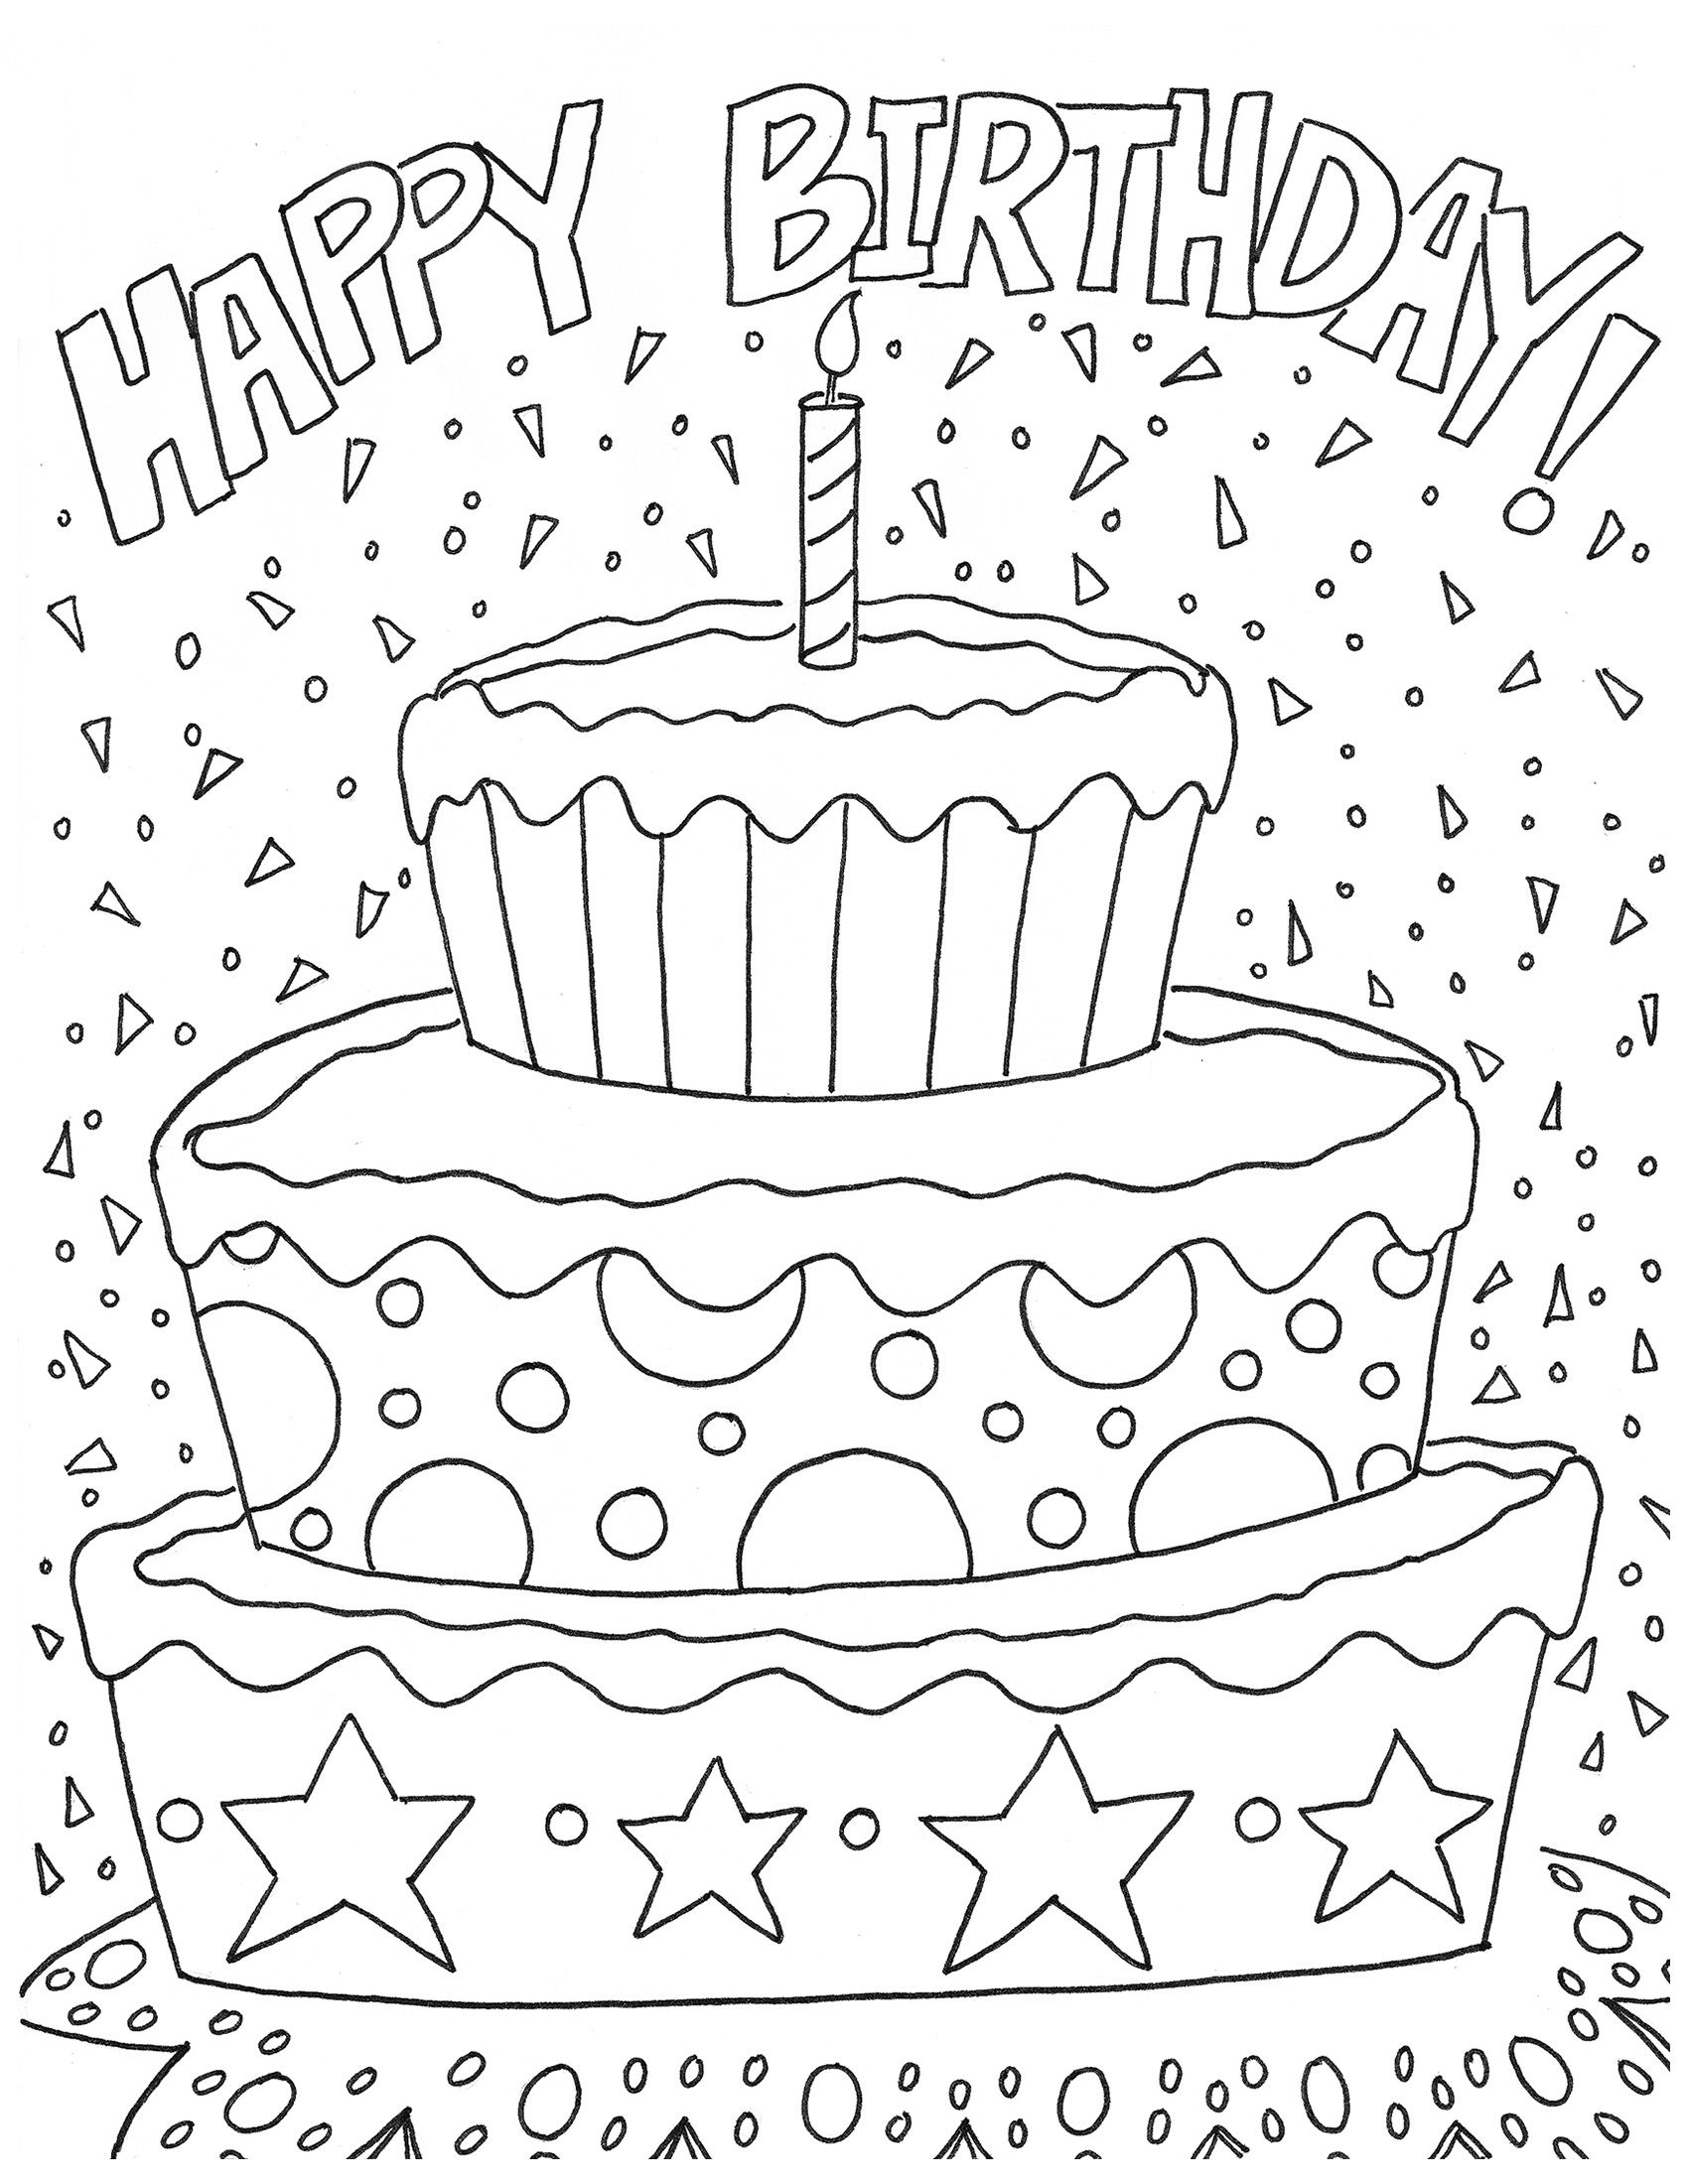 Coloring Rocks Coloring Birthday Cards Happy Birthday Coloring Pages Happy Birthday Printable